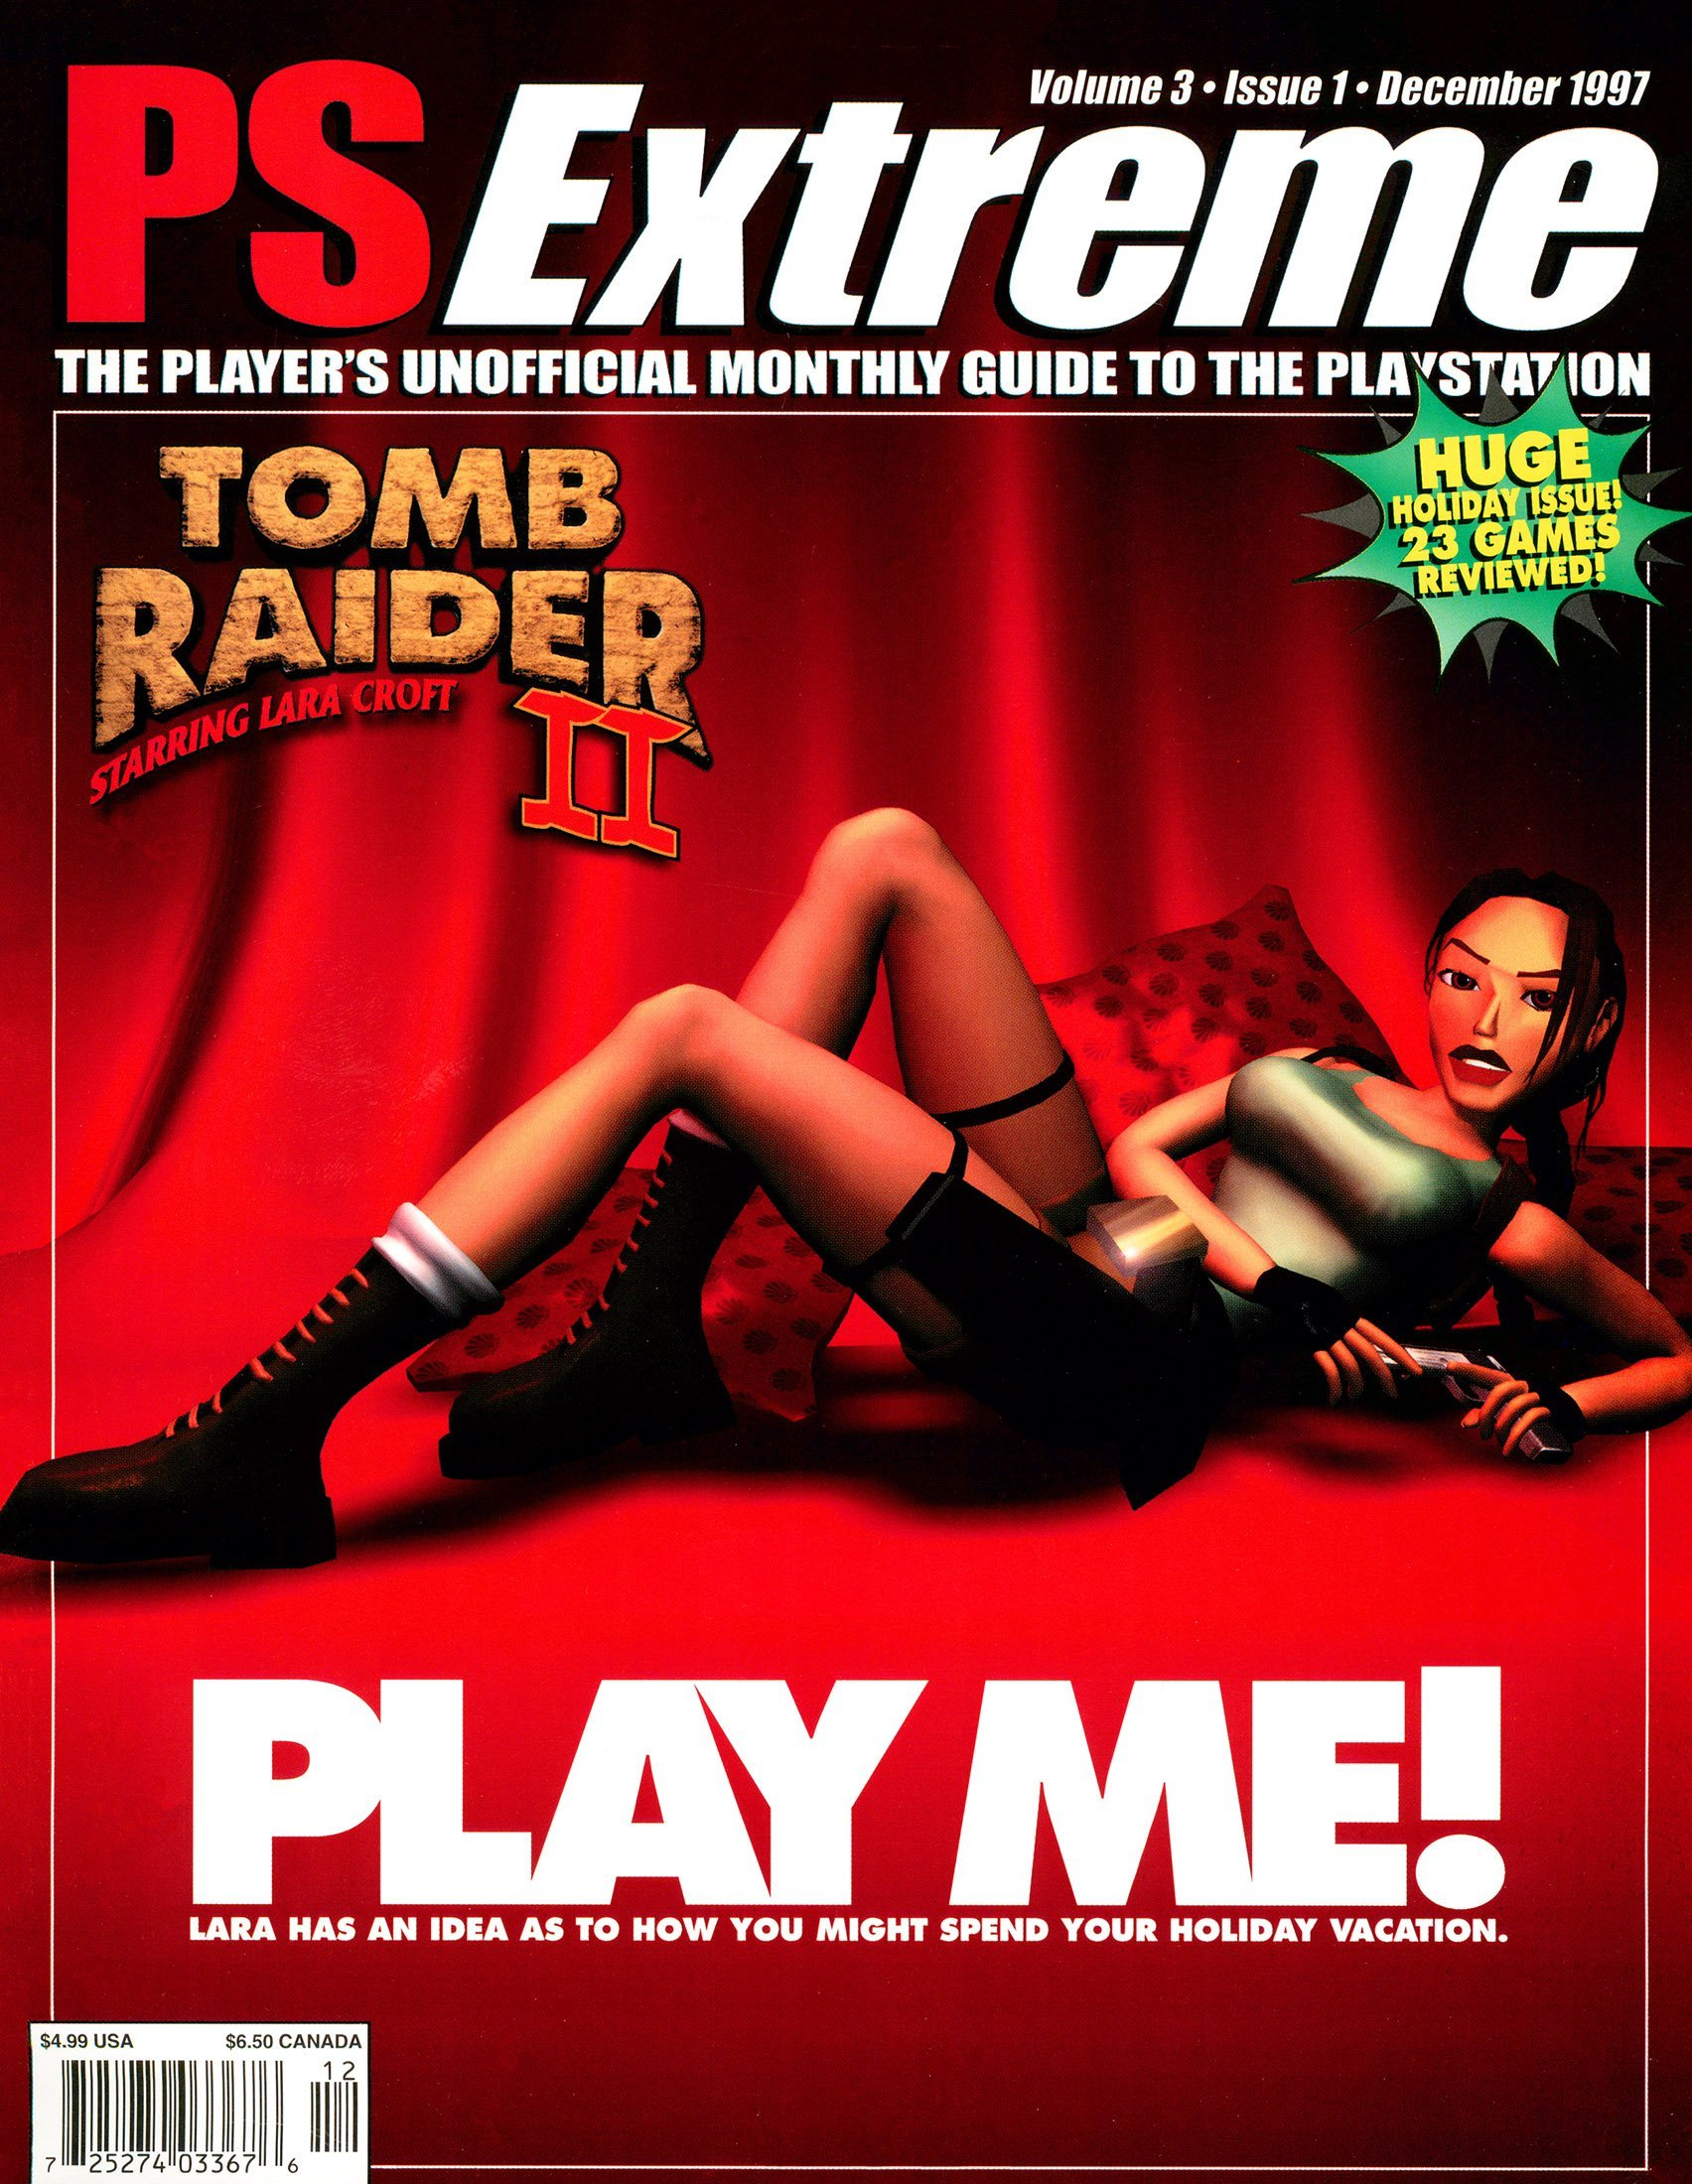 PSExtreme Issue 25 December 1997